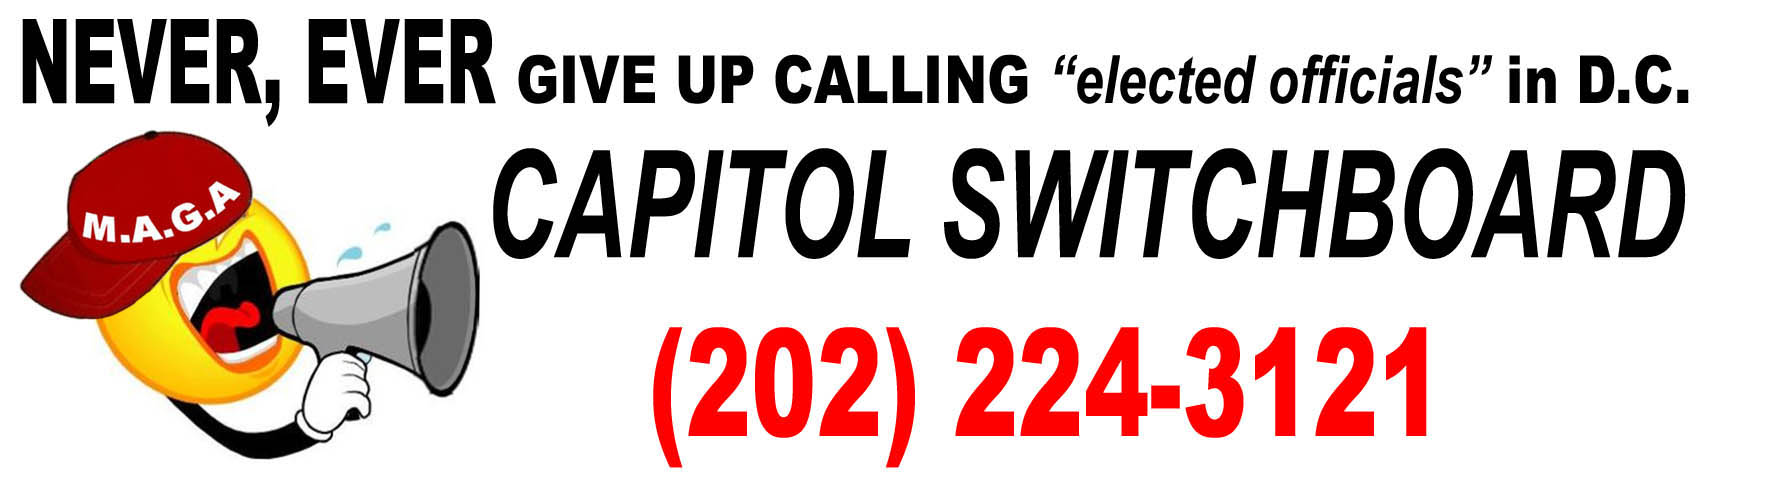 NEVER EVER GIVE UP CALLING DC OFFICIALS - JPEG.jpg